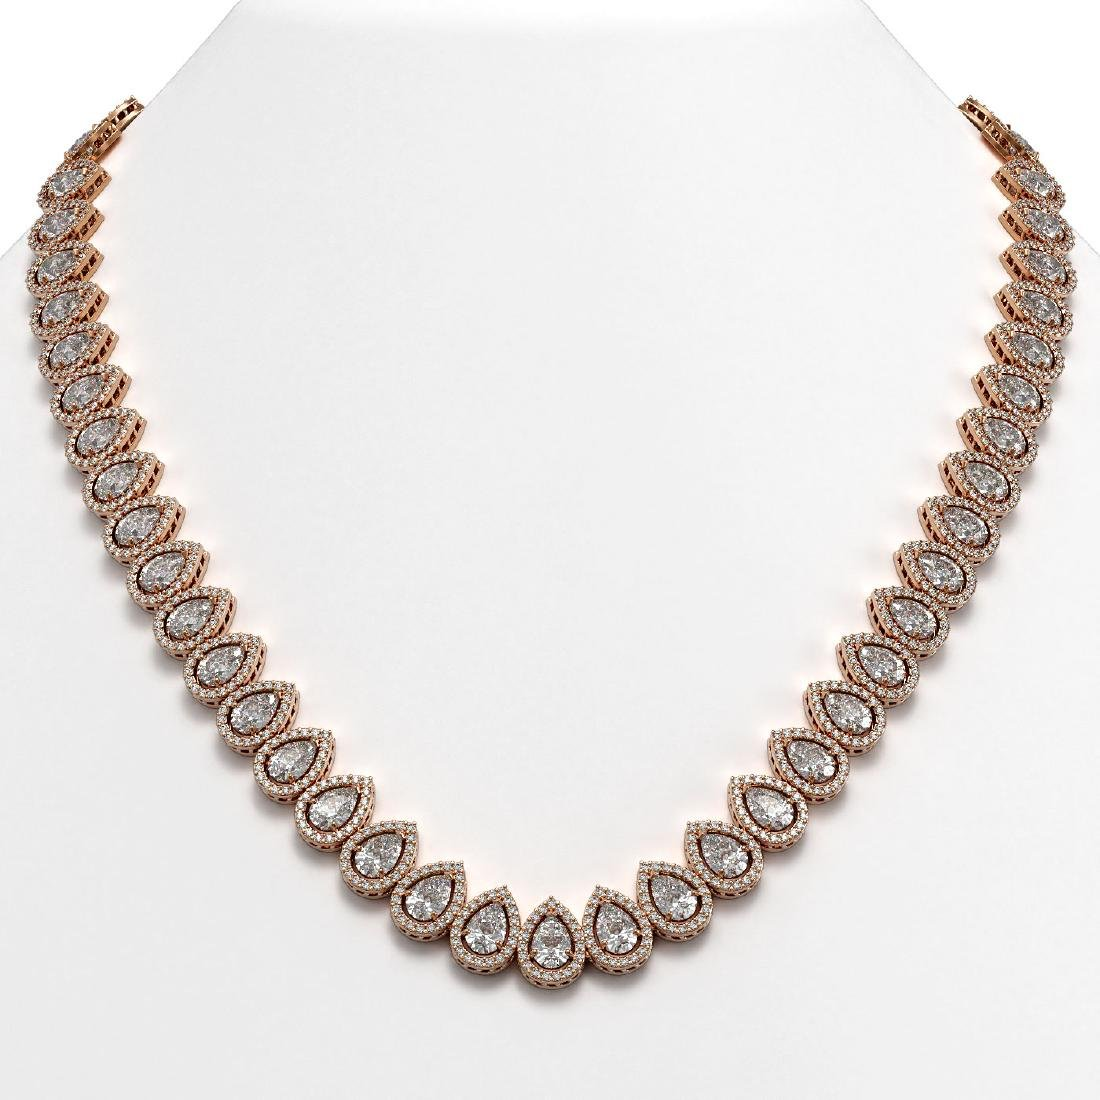 42.11 CTW Pear Diamond Designer Necklace 18K Rose Gold